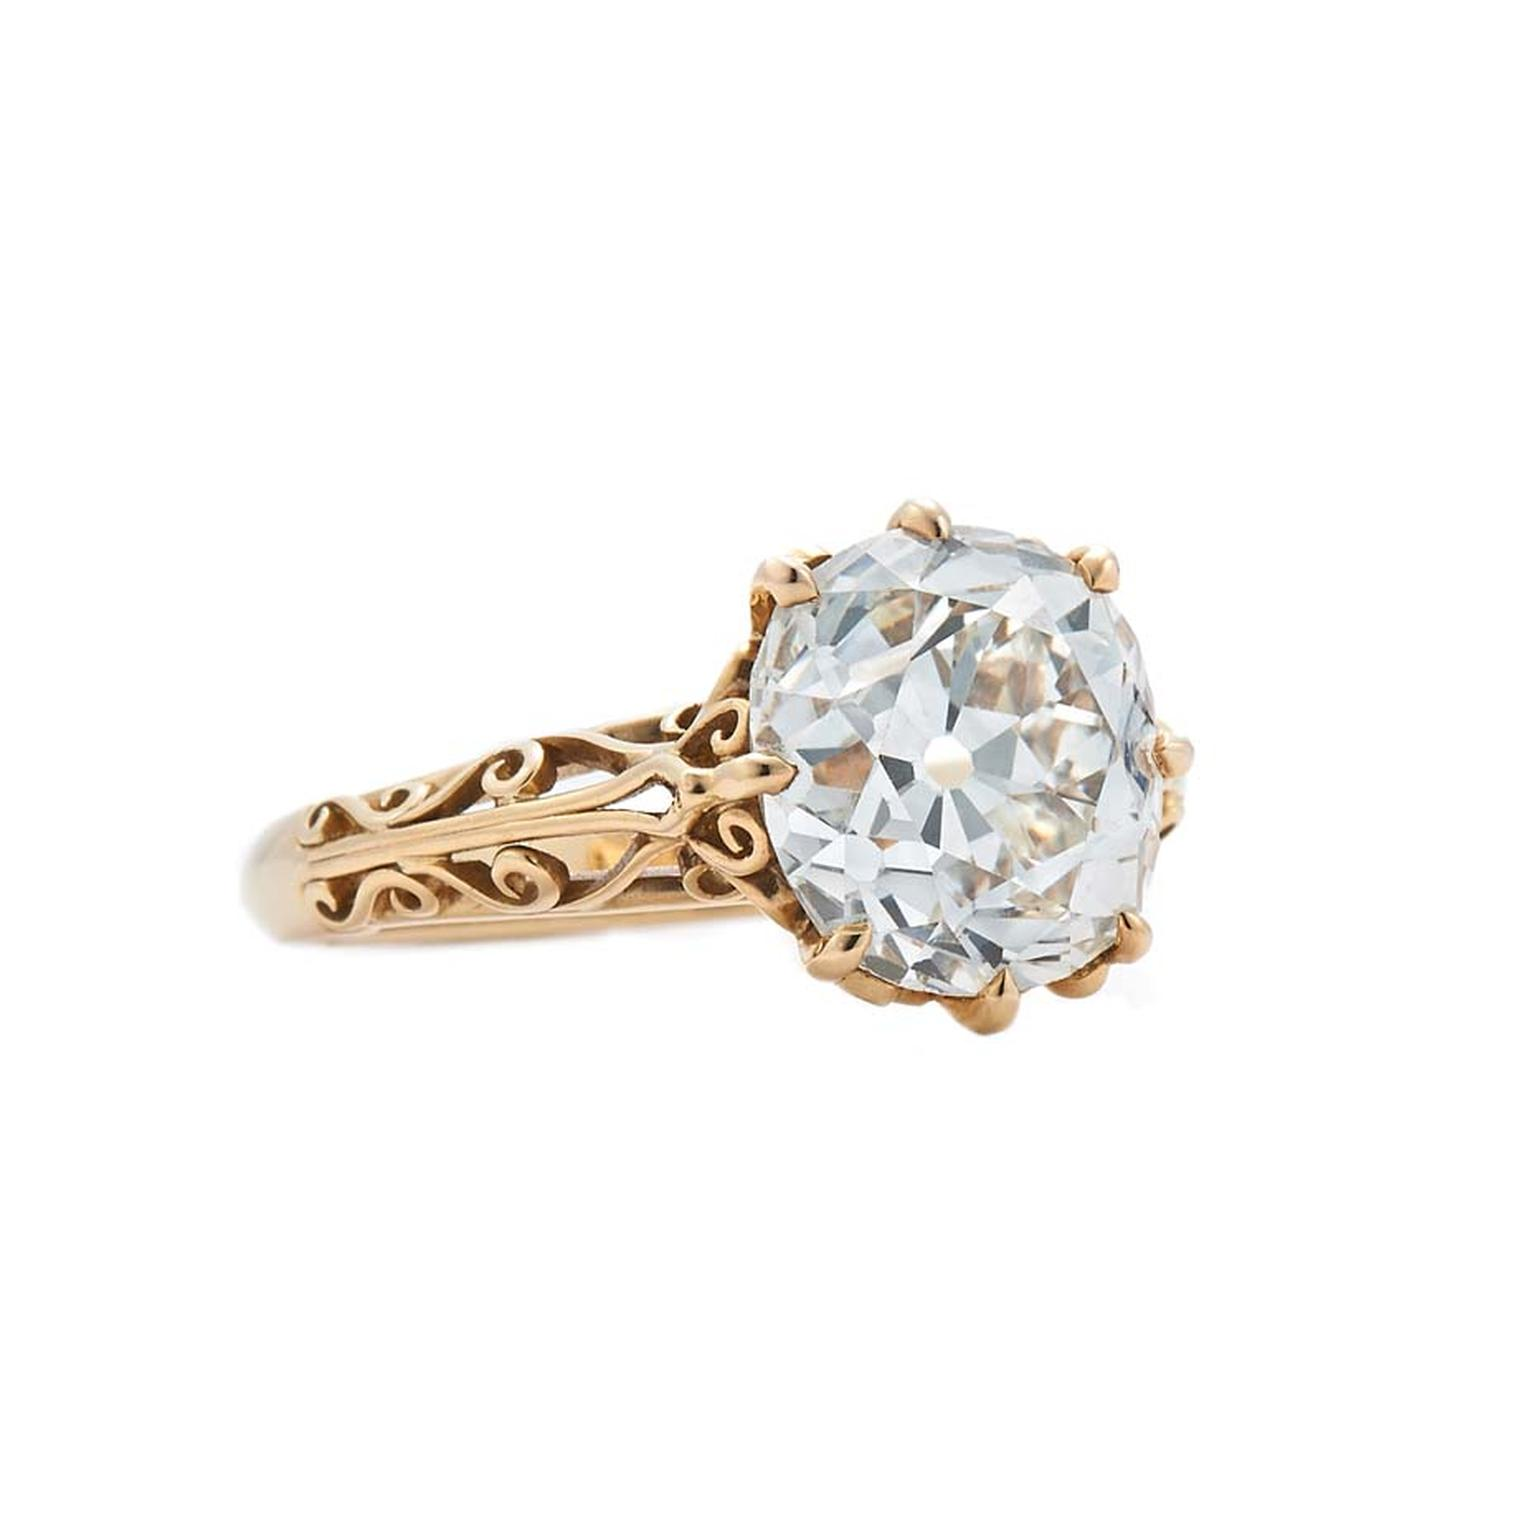 4.61ct old mine diamond filigree engagement ring, available from Fred Leighton at 1stdibs.com ($100,000).